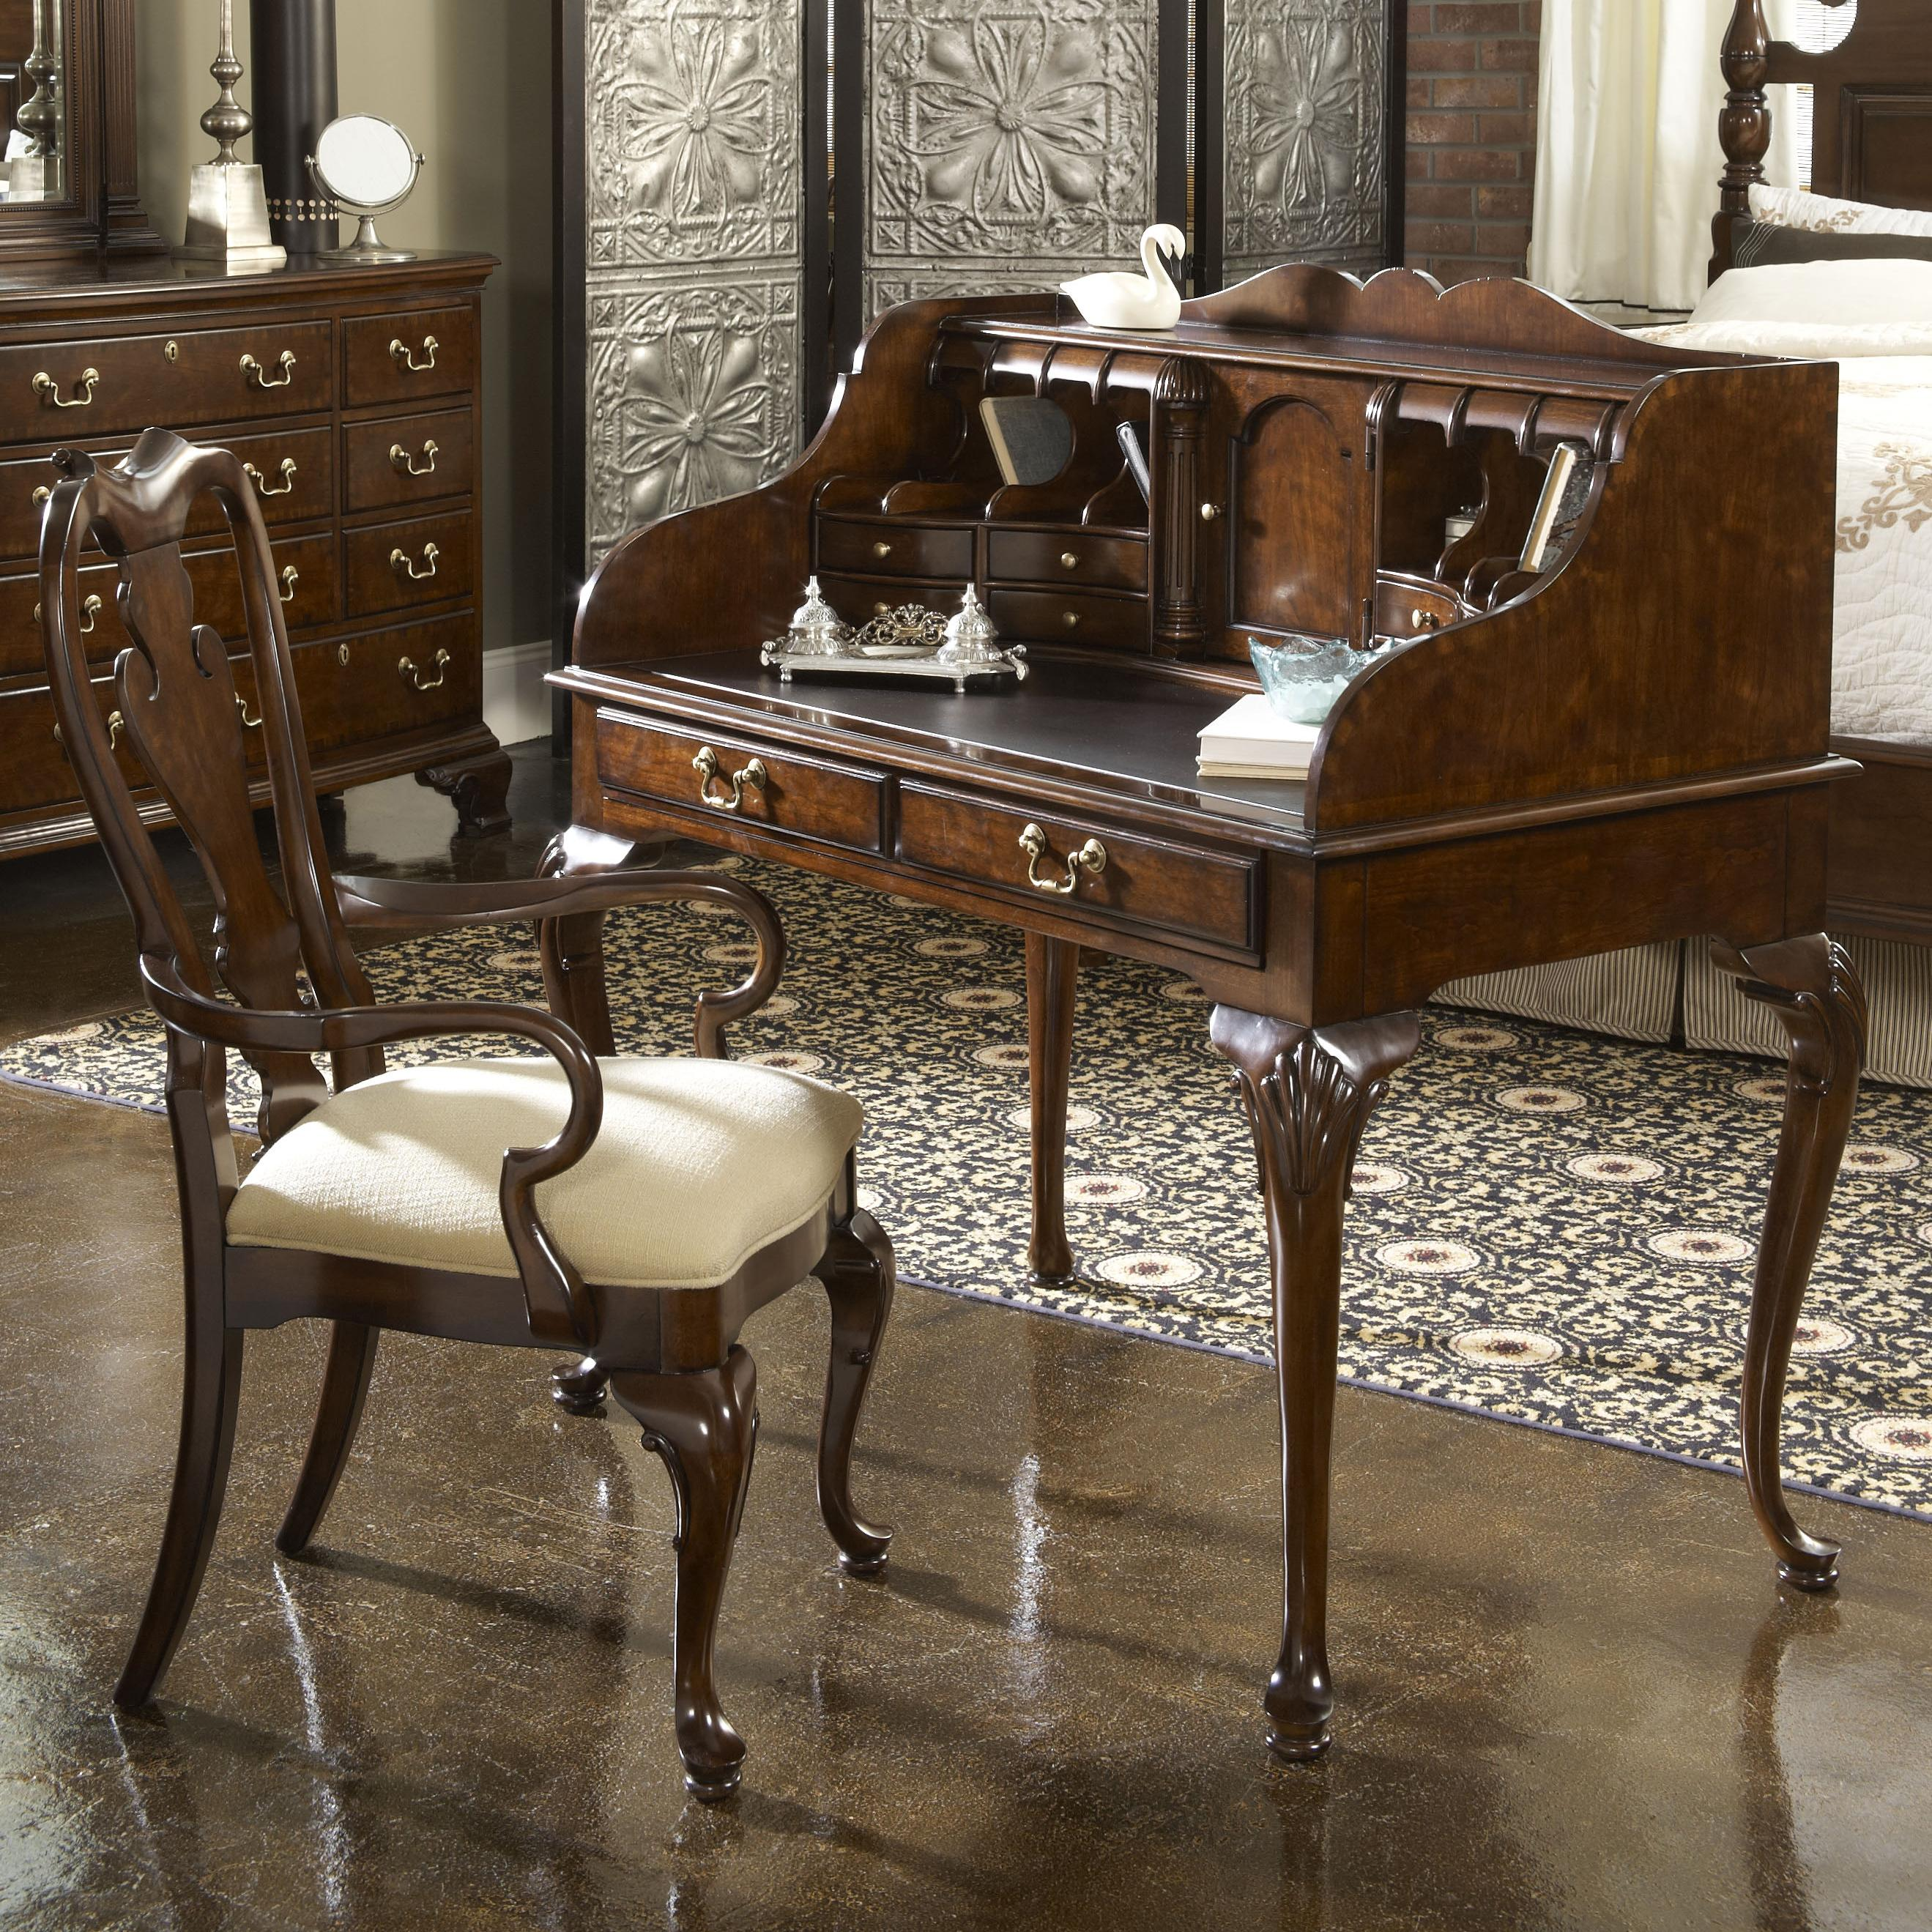 Belfort Signature Belmont New Bedford Ladies' Desk - Item Number: 1020-925